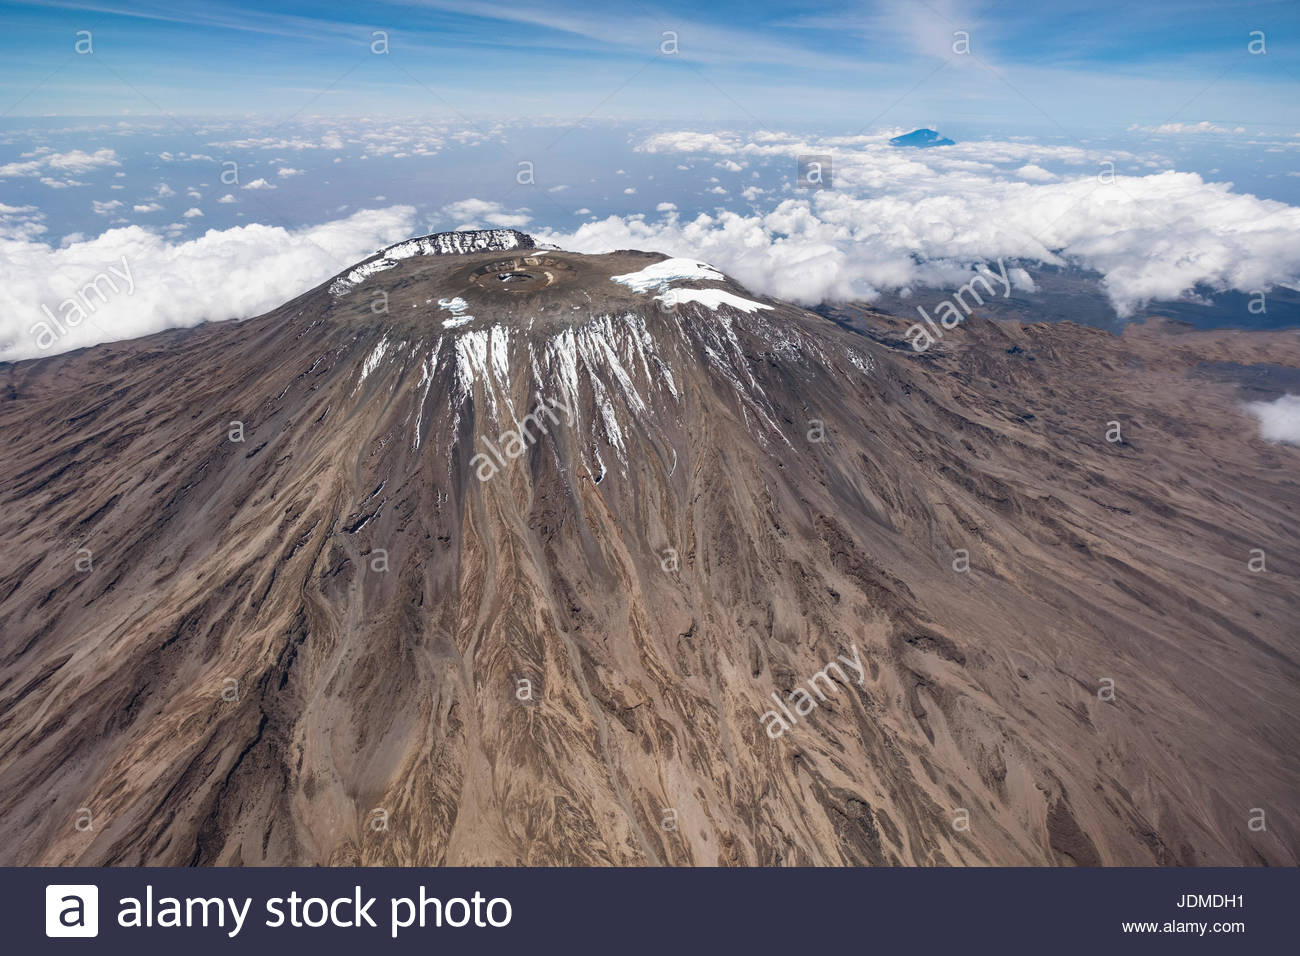 Le sommet du mont Kilimandjaro. Photo Stock